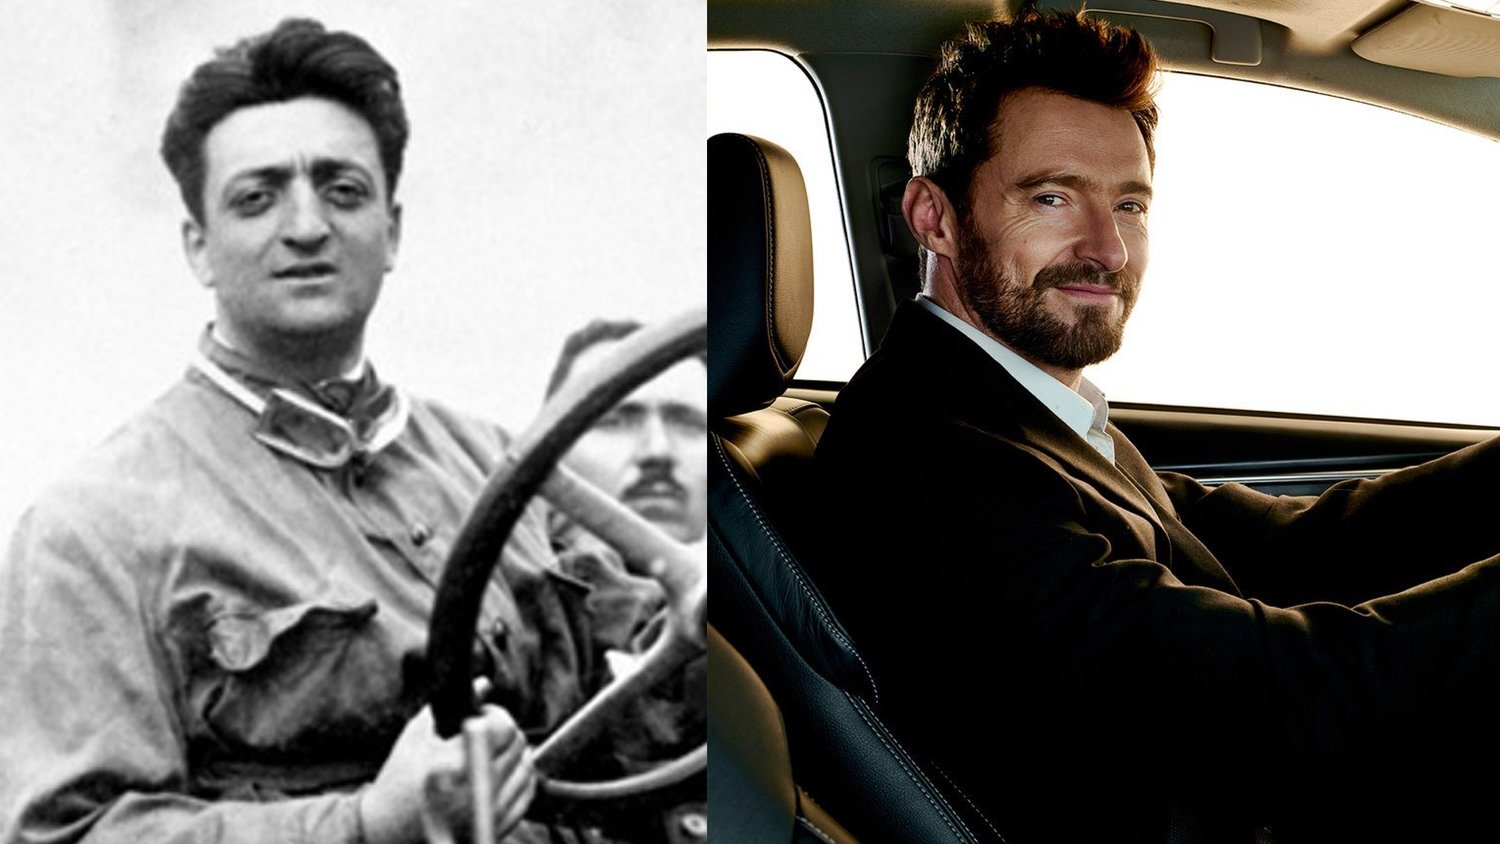 Hugh Jackman to Star in Director Michael Mann's FERRARI